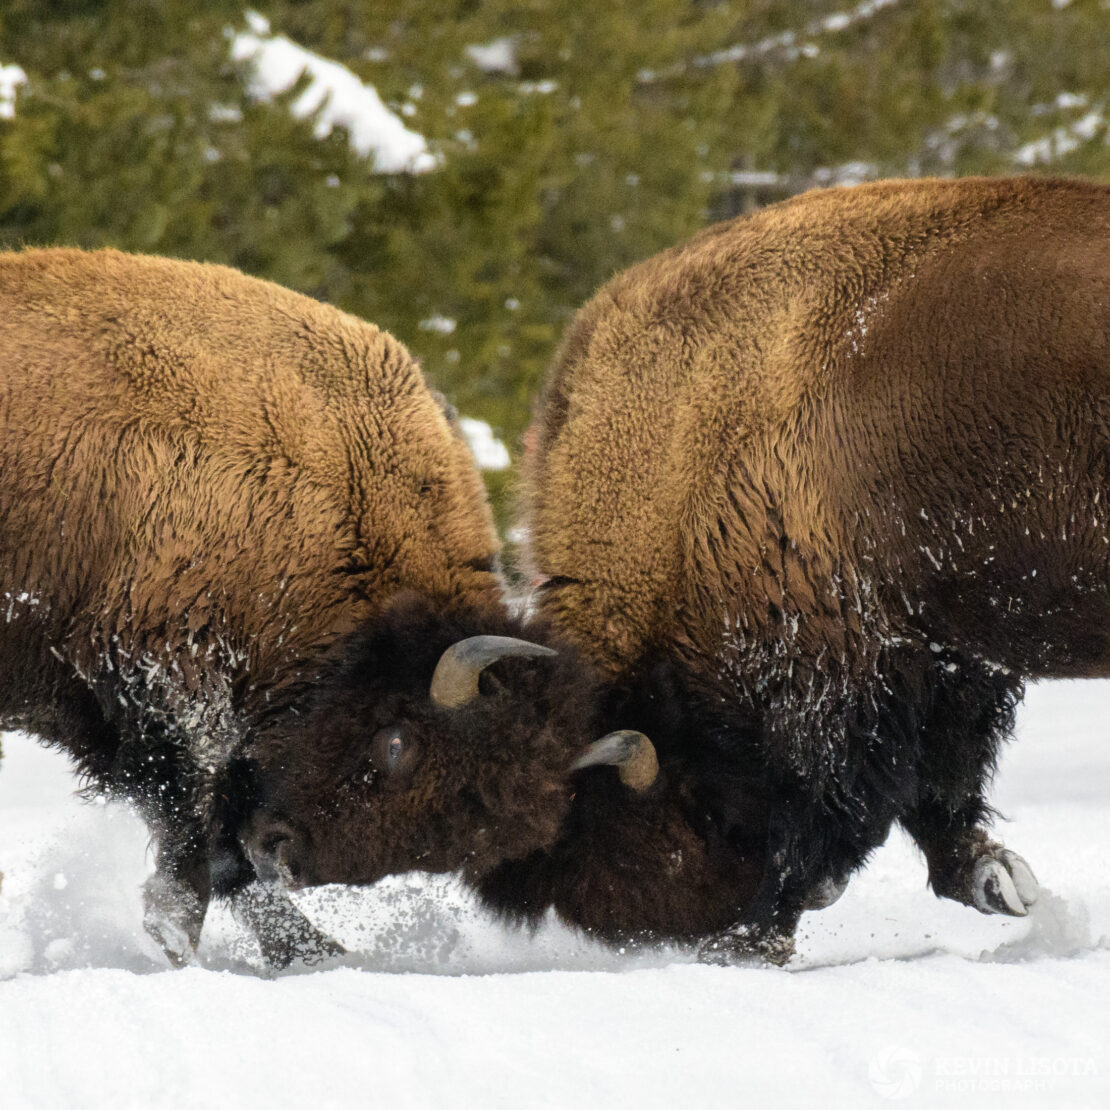 Two bison tussle in the snow